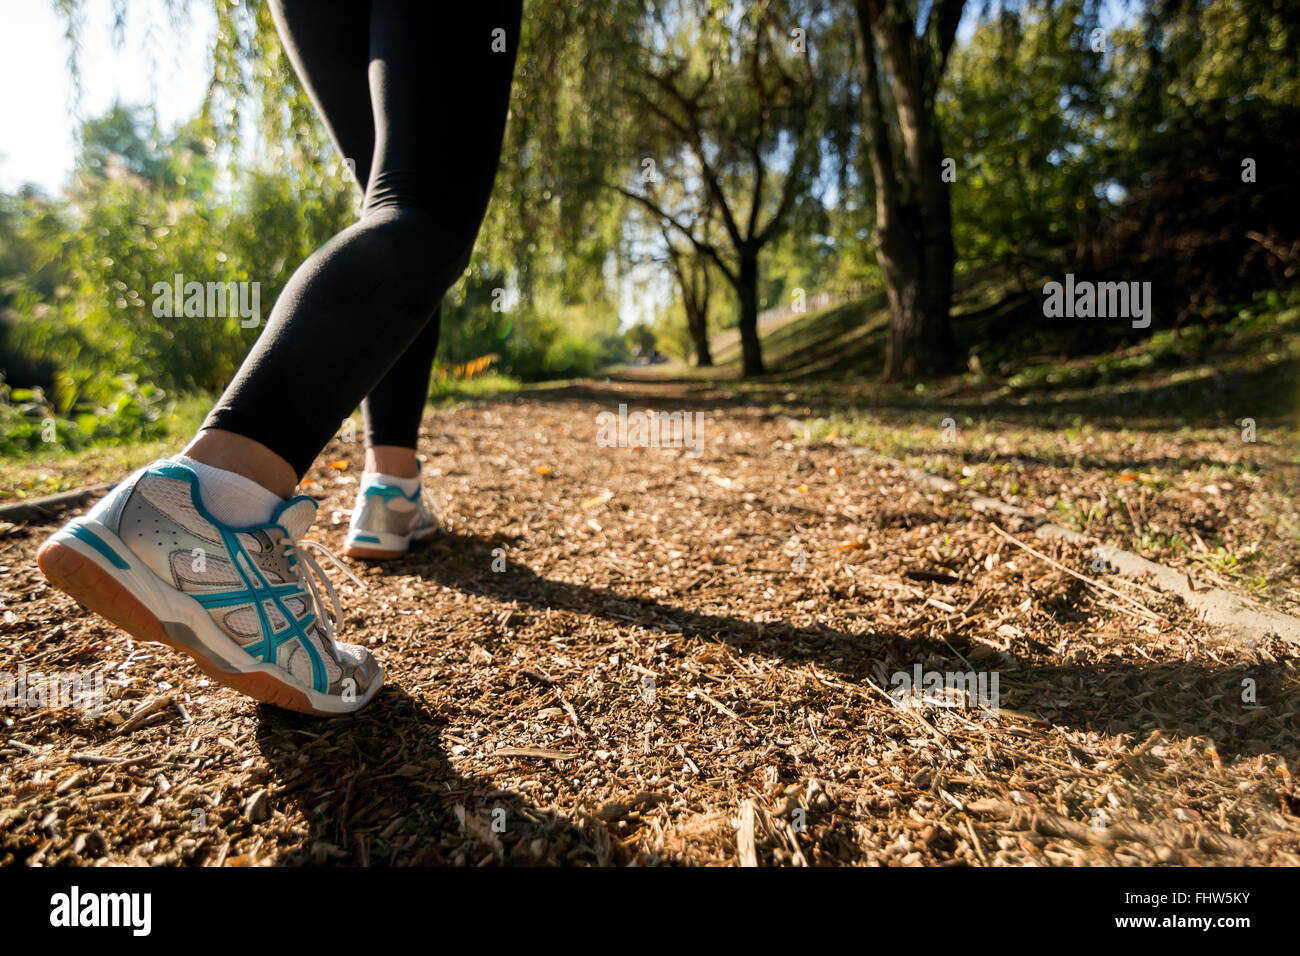 Closeup of runner feet jogging in nature - Stock Image